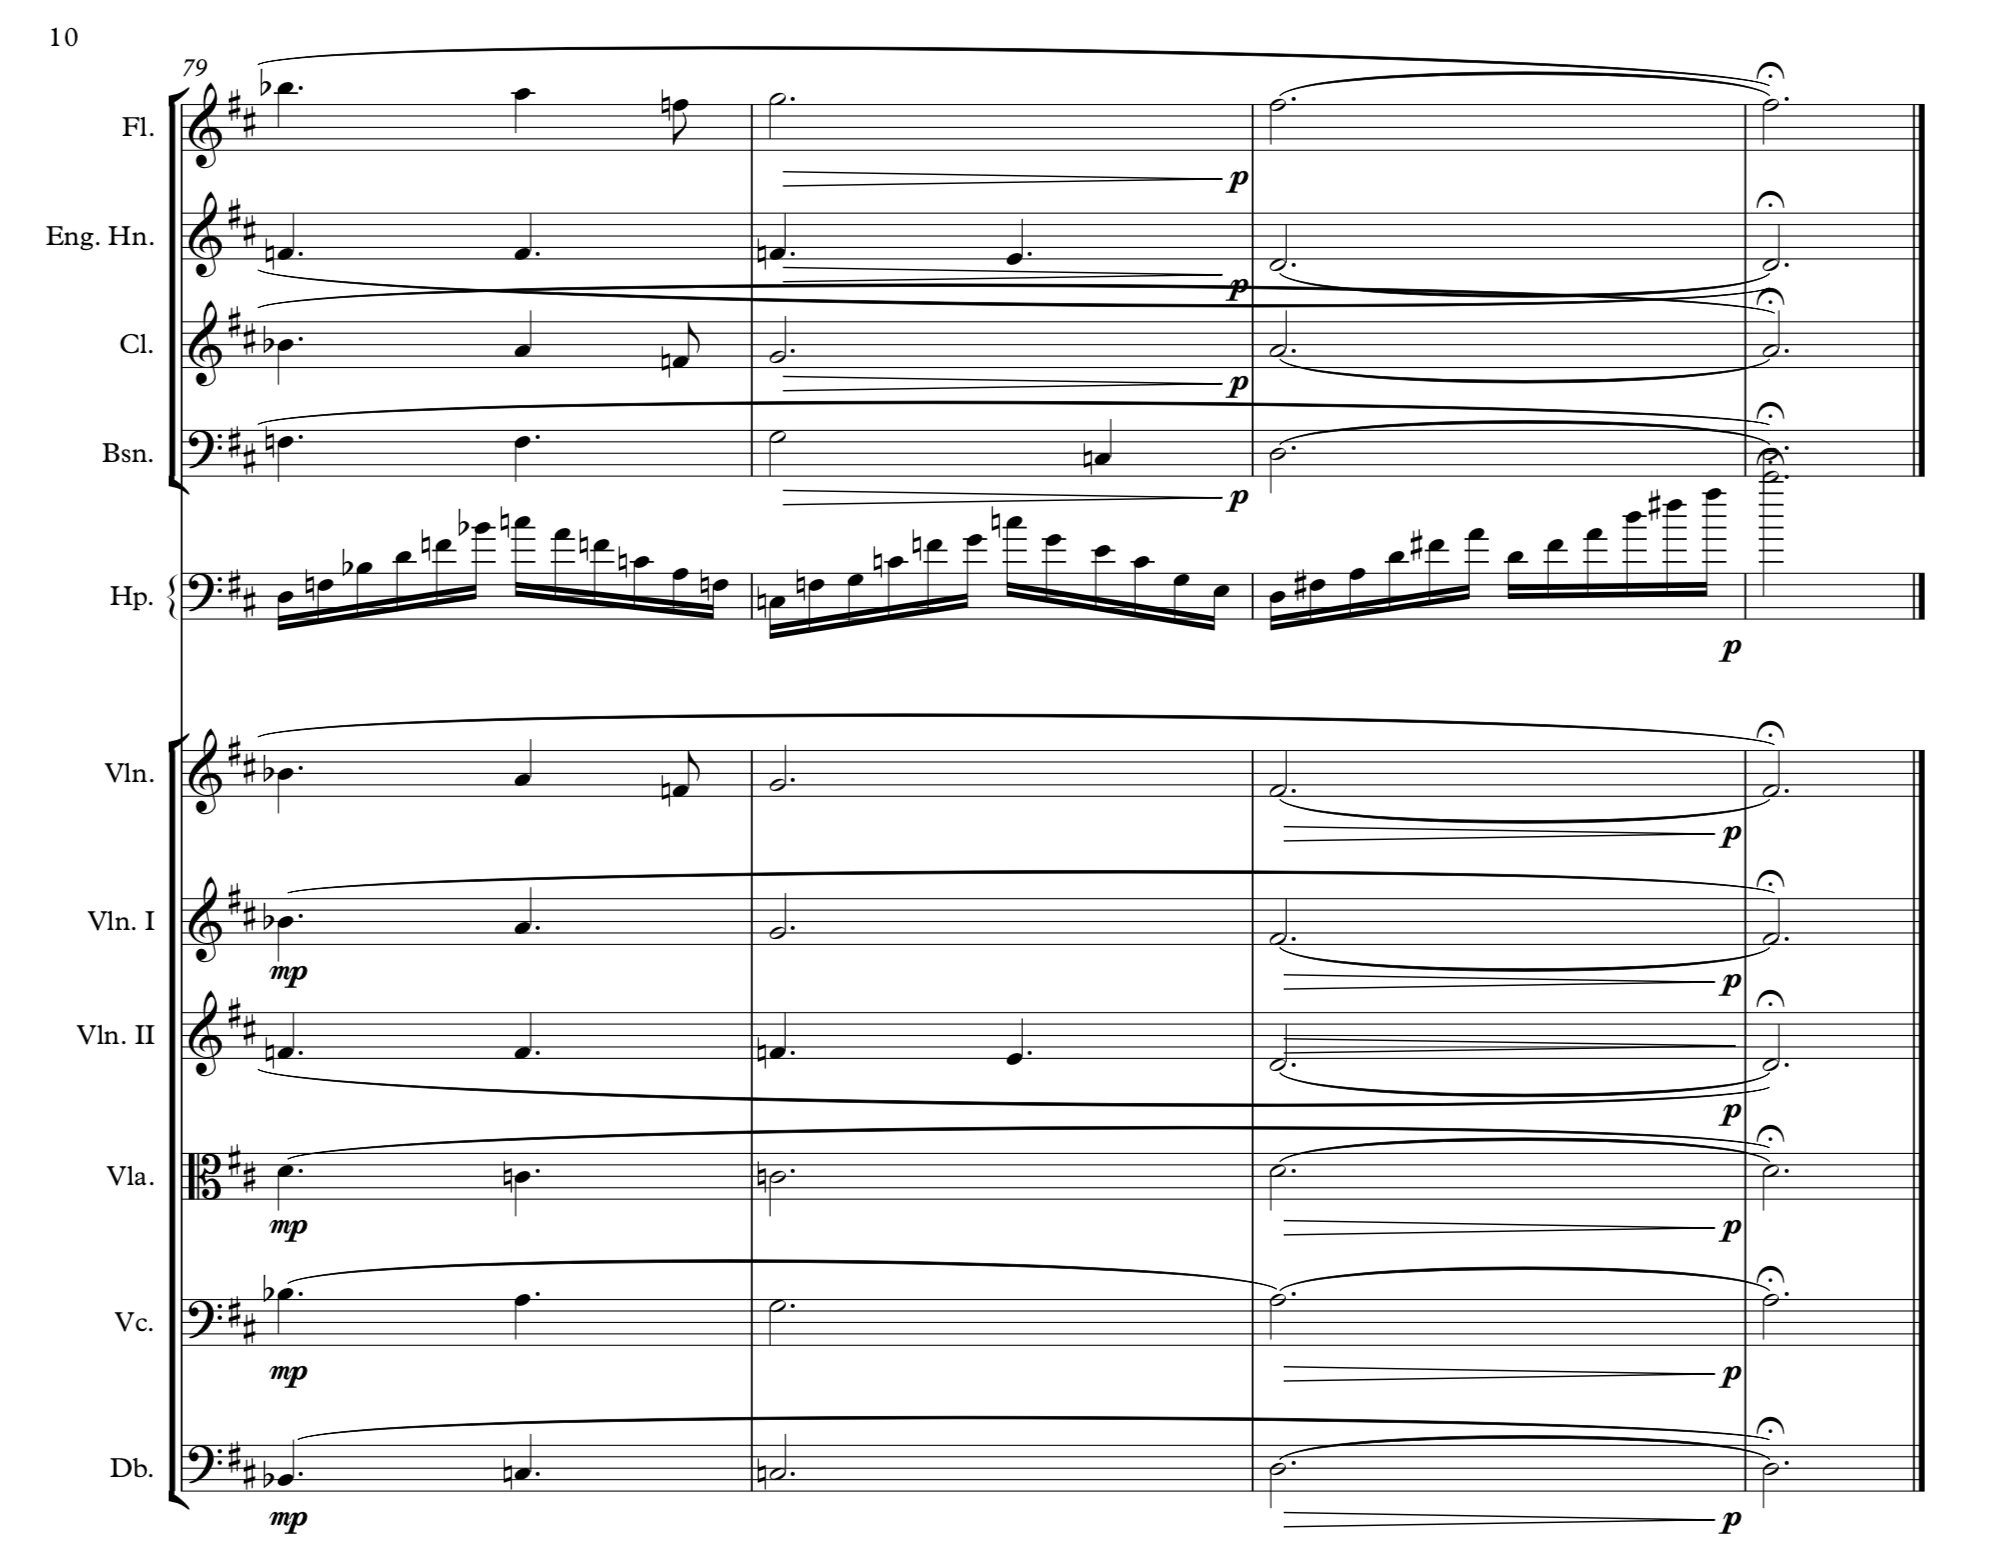 Final four bars, with accidentals in their full glory.